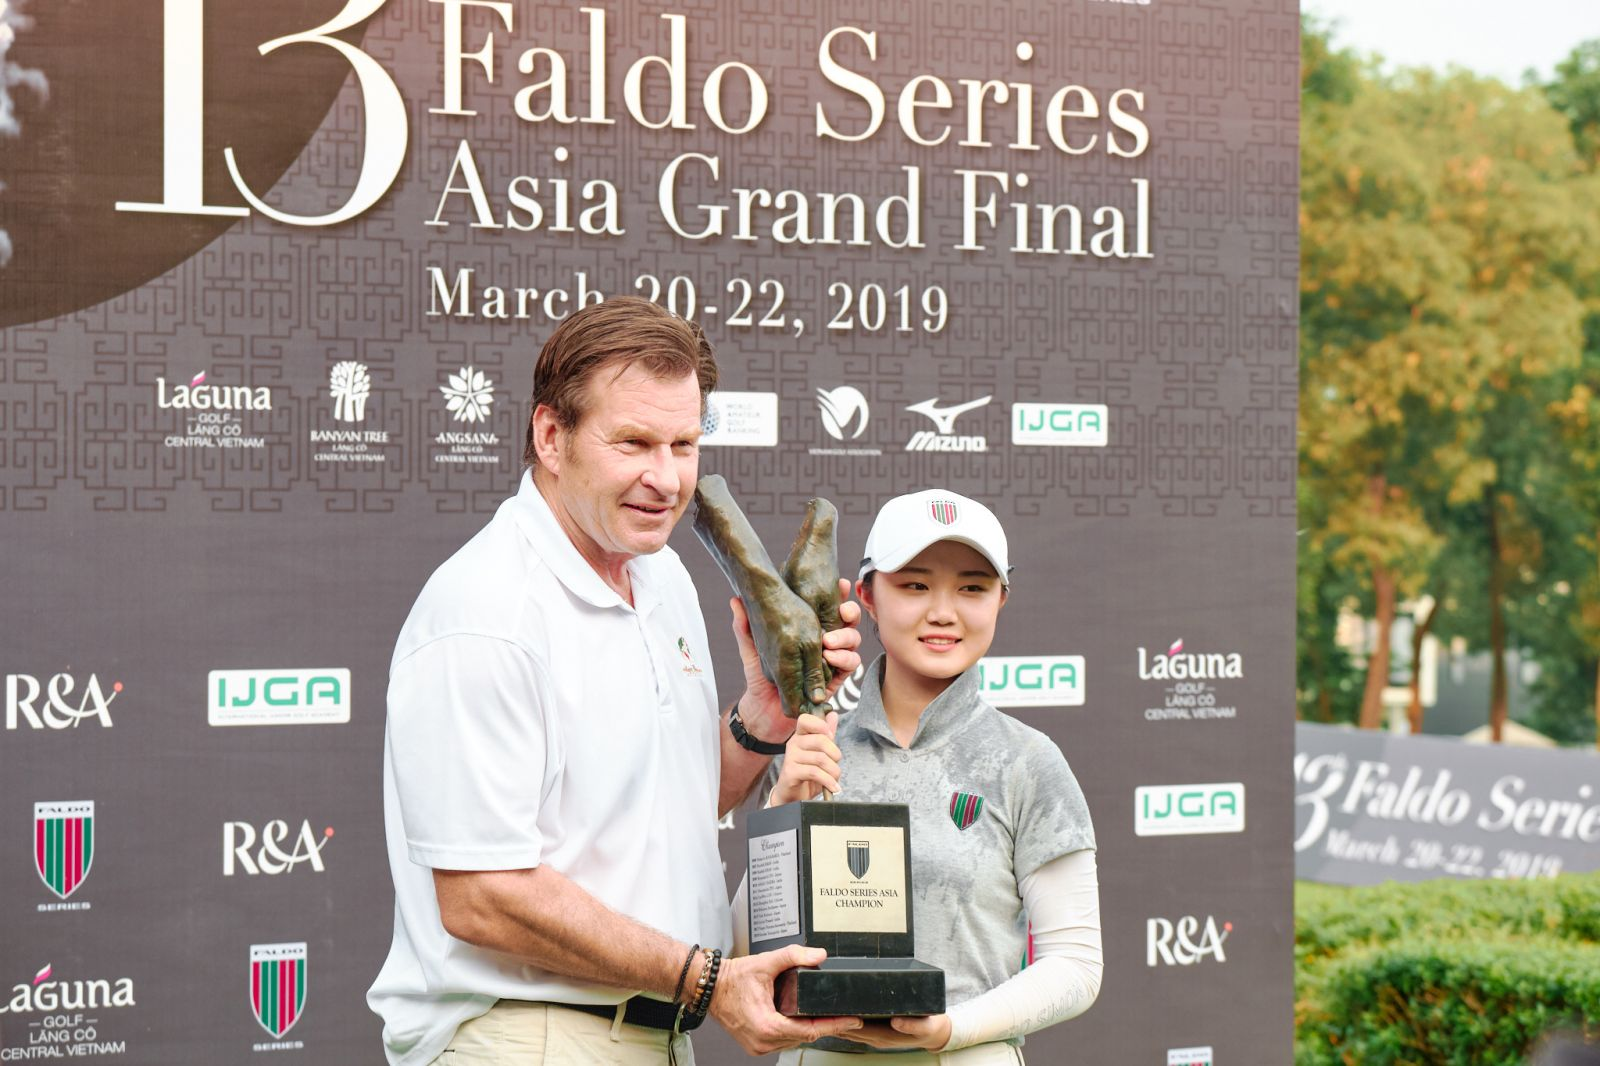 Chang Hsin-chiao victory at Faldo Series Asia Grand Final